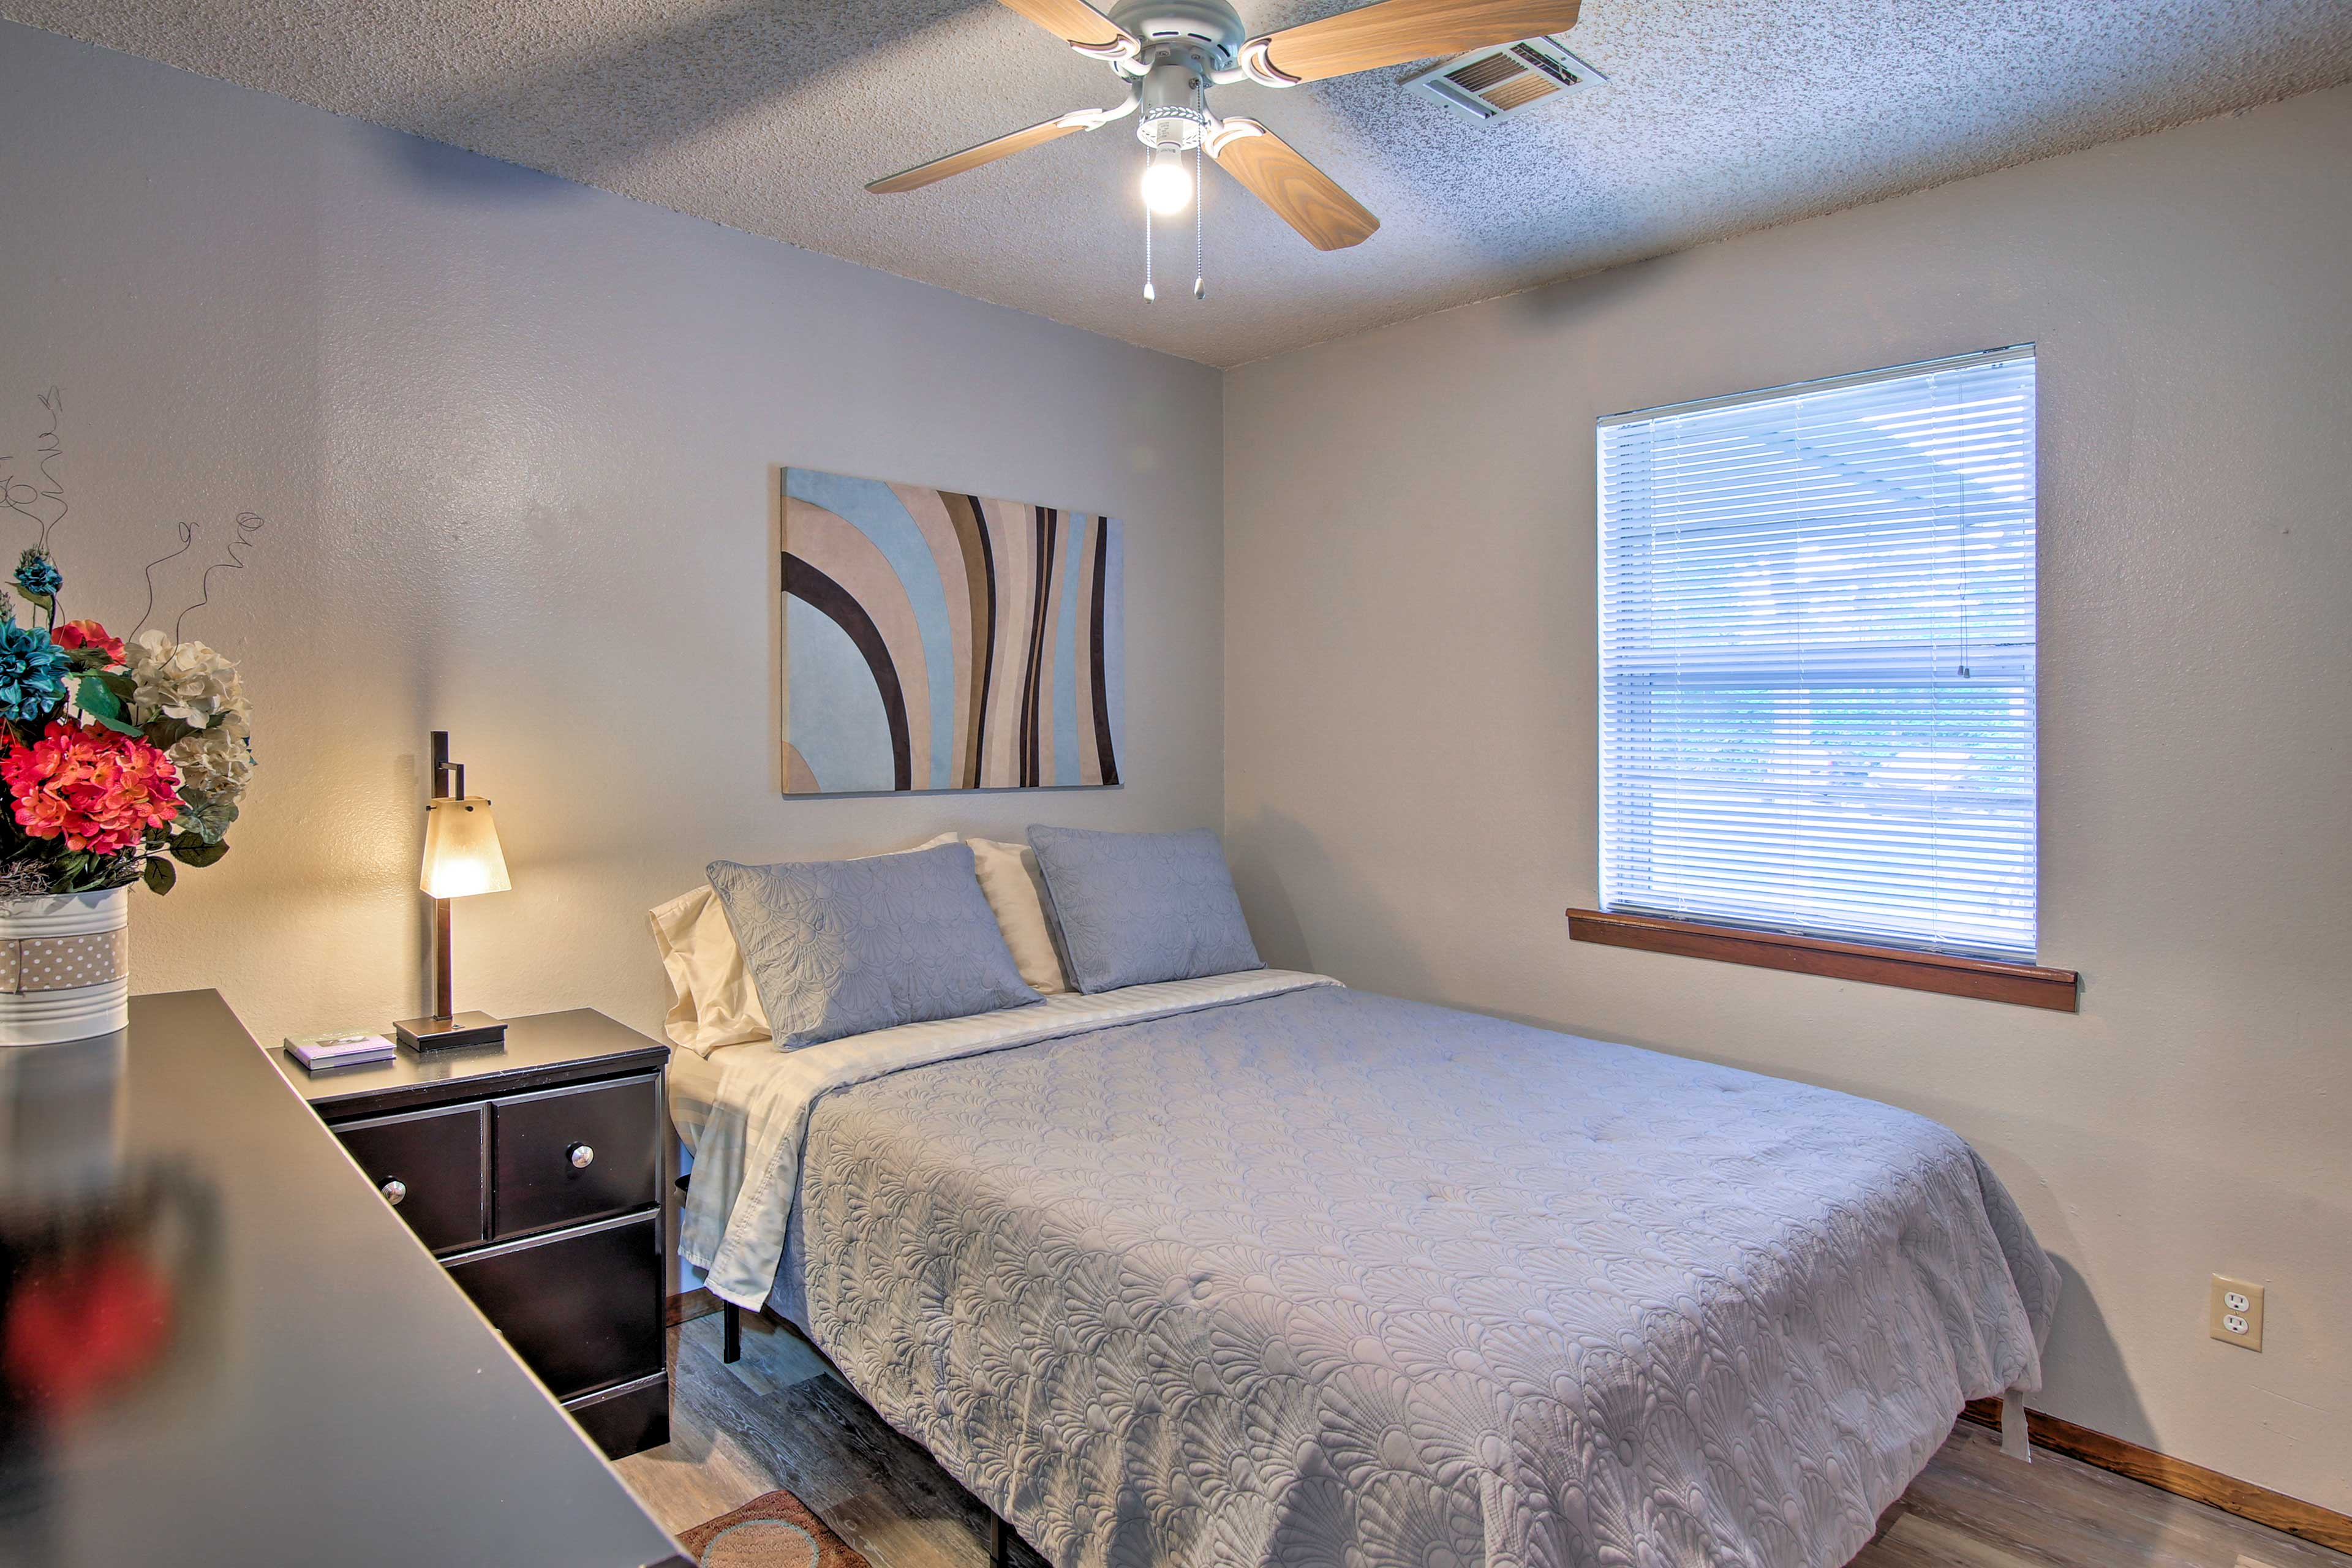 This tranquil bedroom boasts a queen bed and window views.